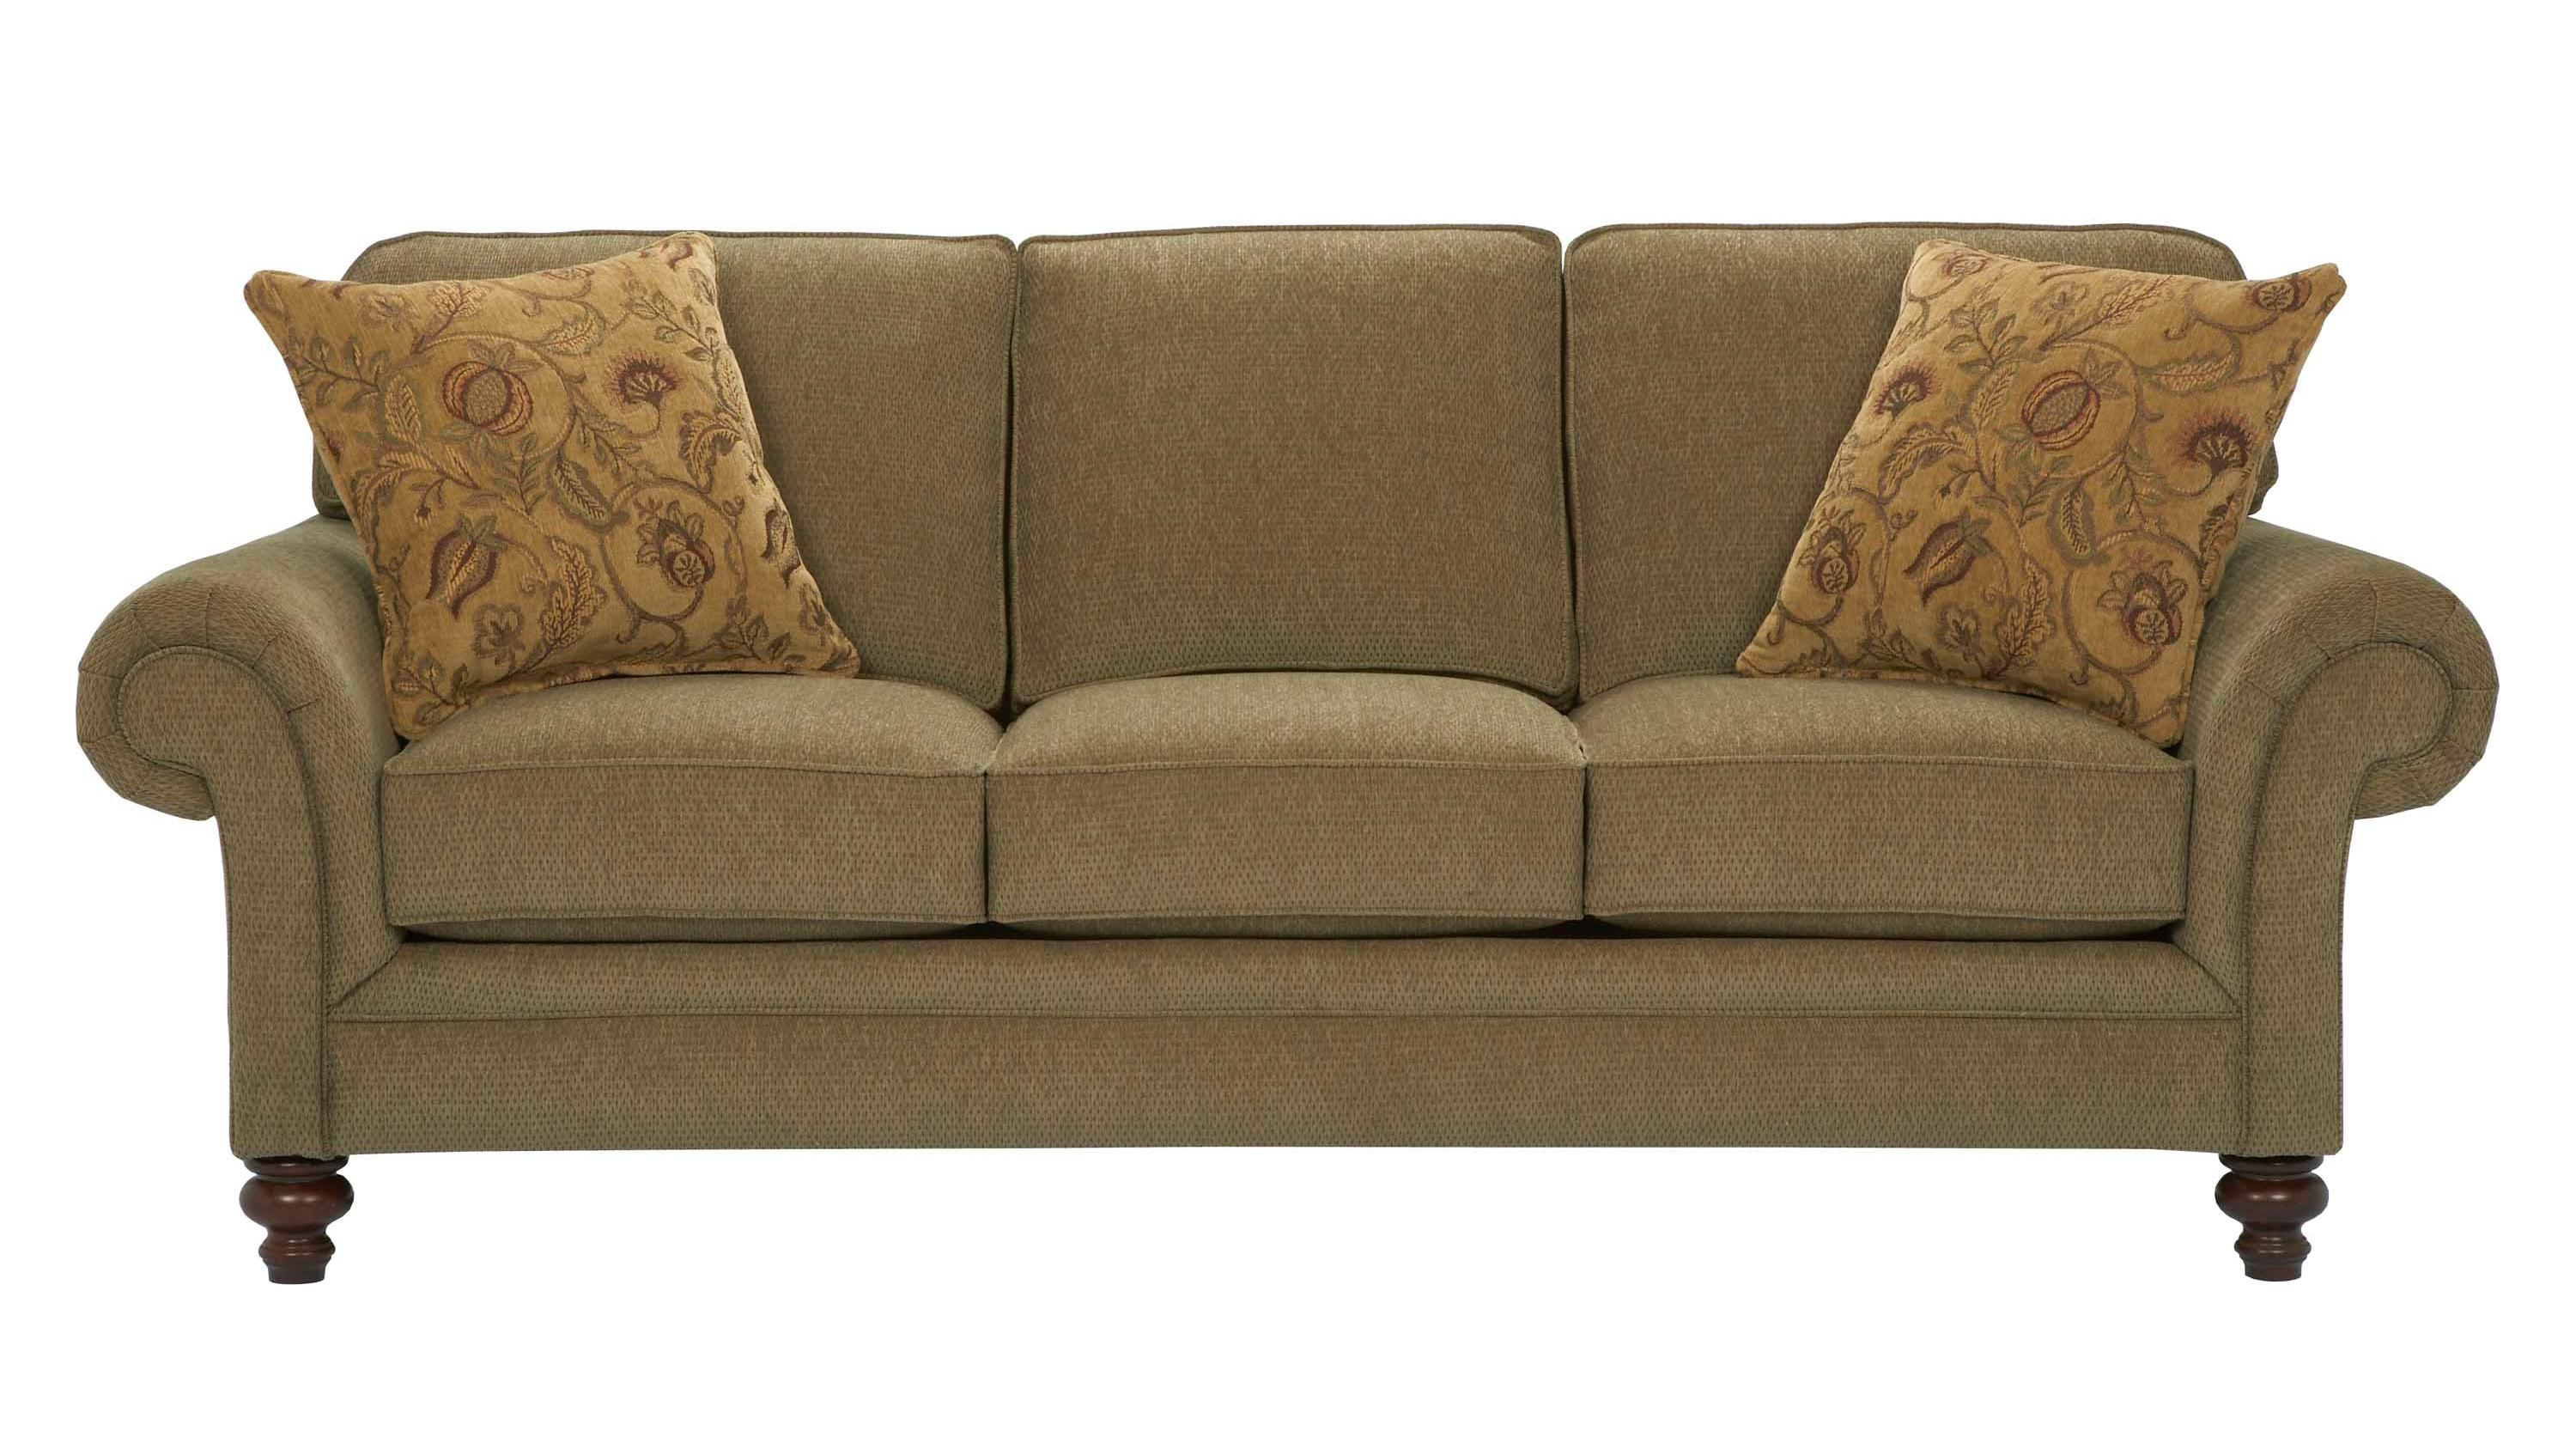 50 Broyhill Sectional Sofa, Broyhill Furniture Audrey Sofa 37623 with Broyhill Perspectives Sofas